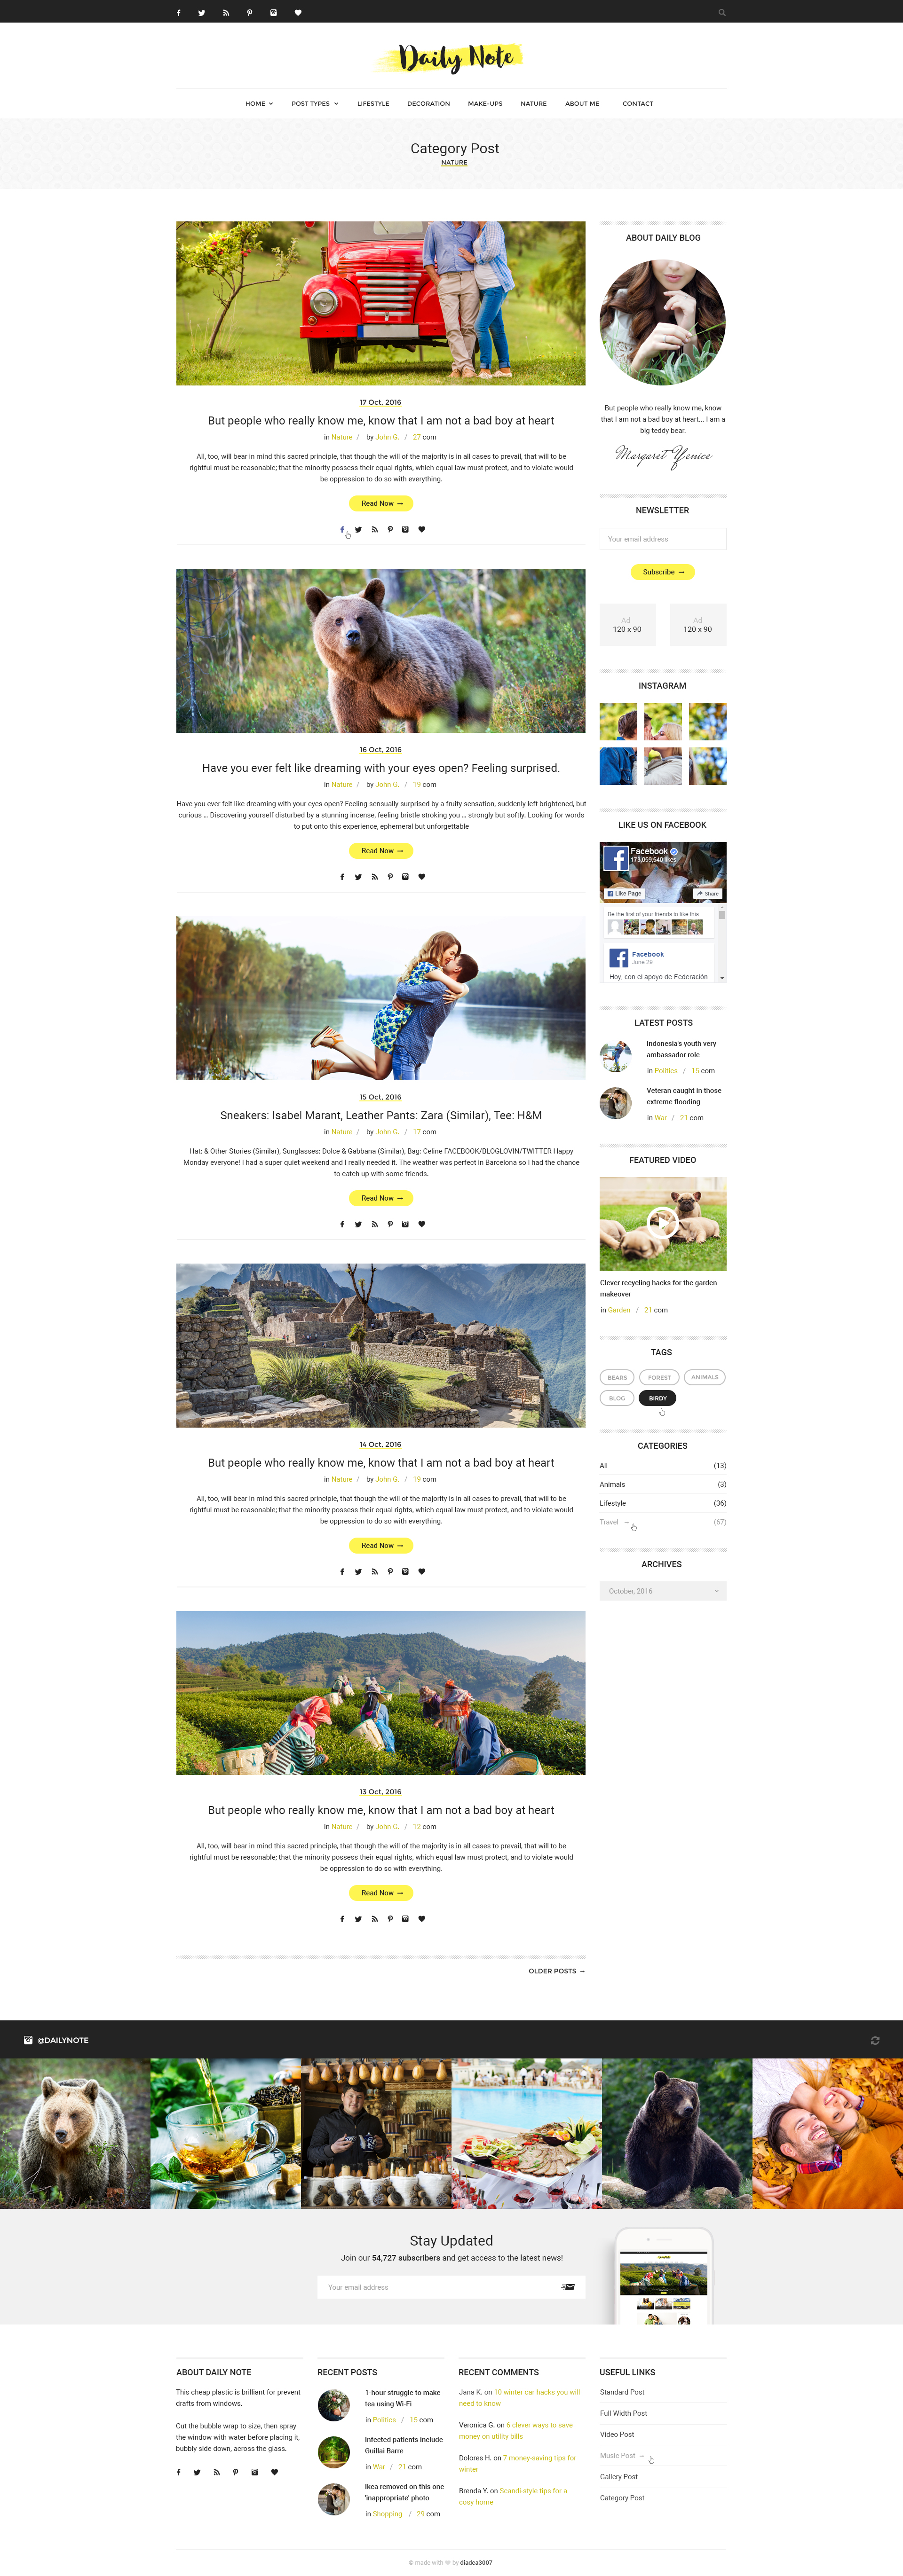 Daily Note Creative Blog PSD Template by diadea3007 – Daily Note Template